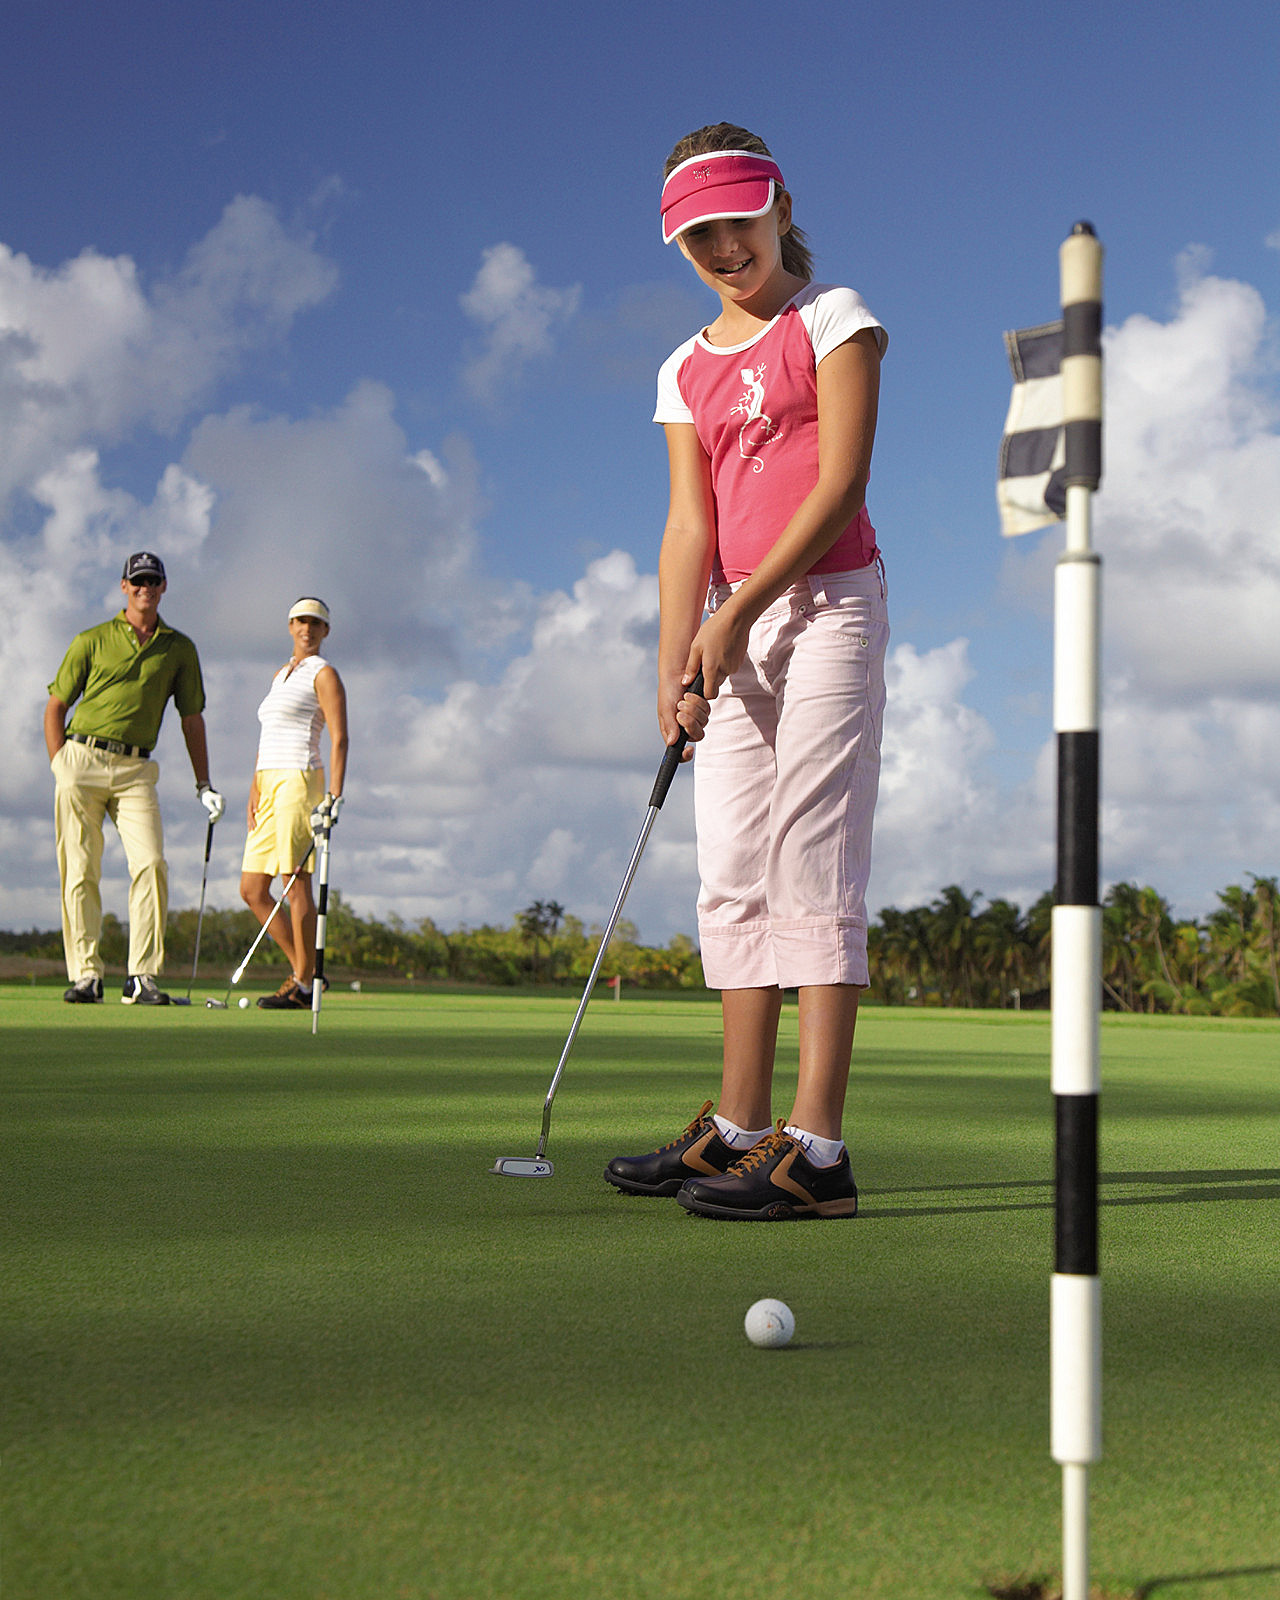 Kids Golf Academy at Four Seasons Mauritius